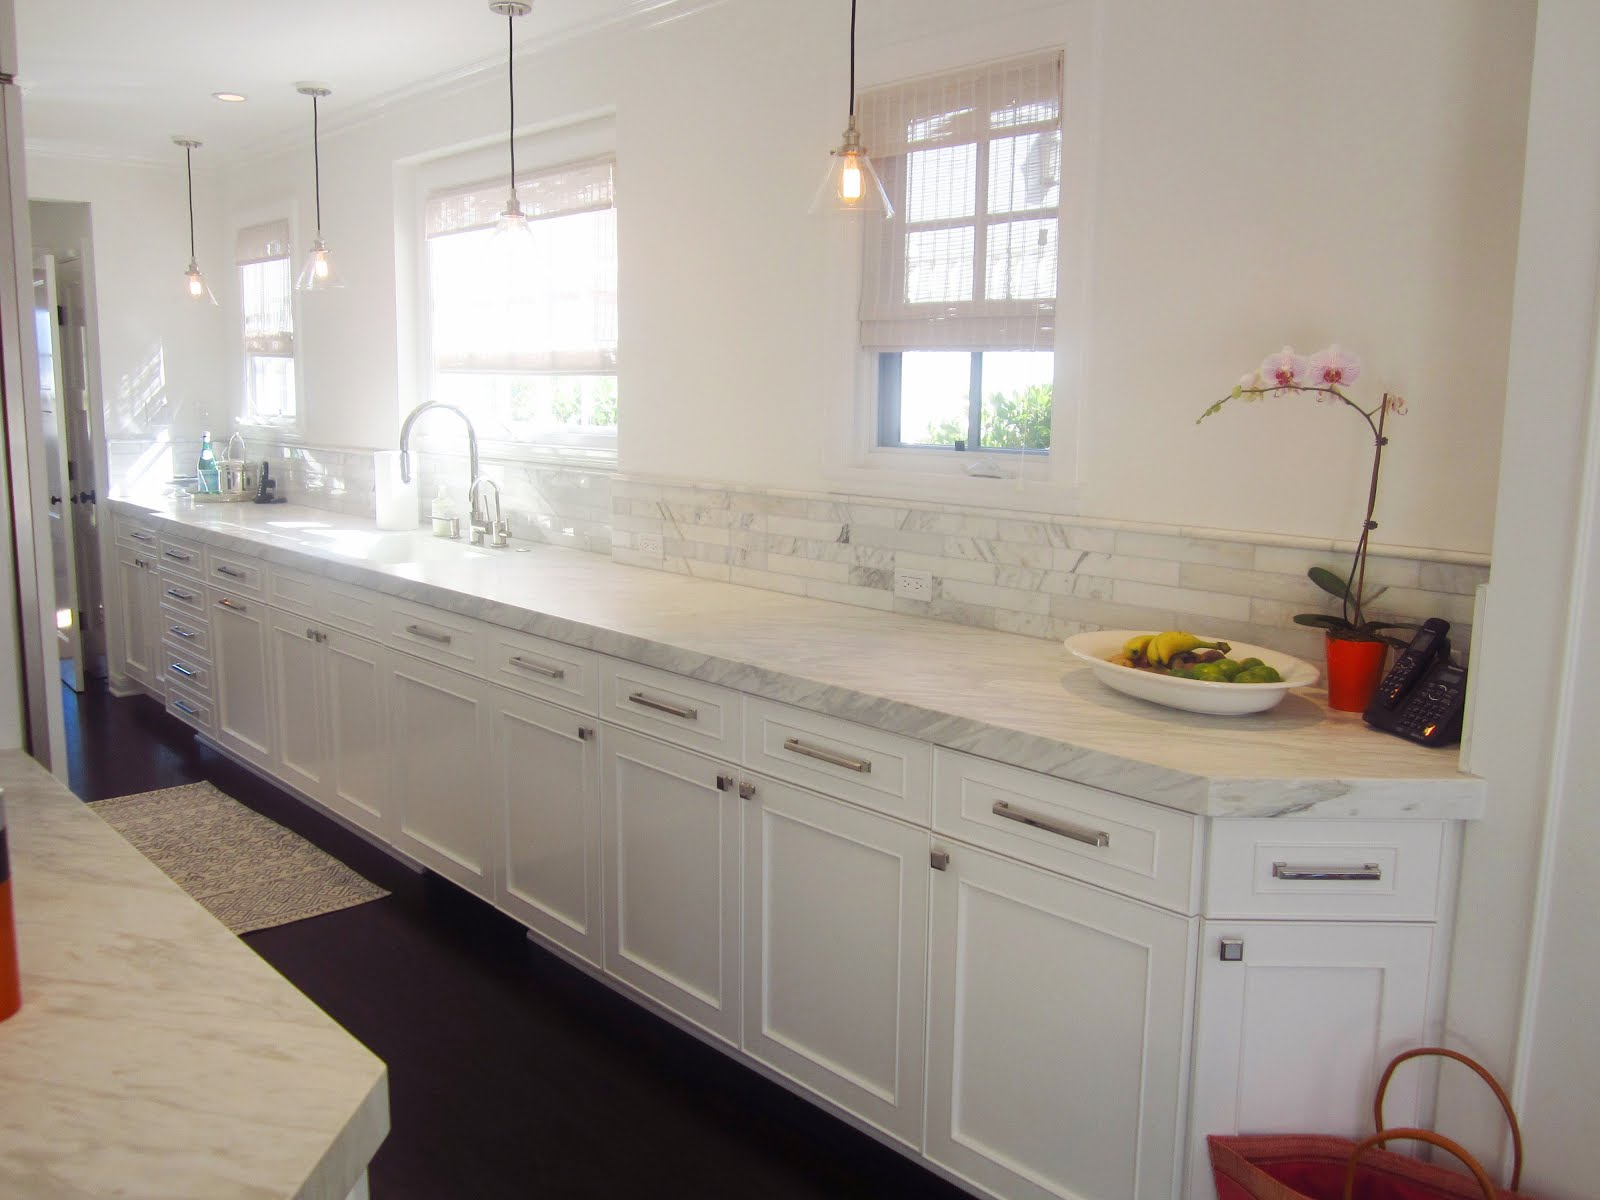 Cococozy exclusive a chic galley kitchen cococozy for Kitchen remodel ideas with white cabinets